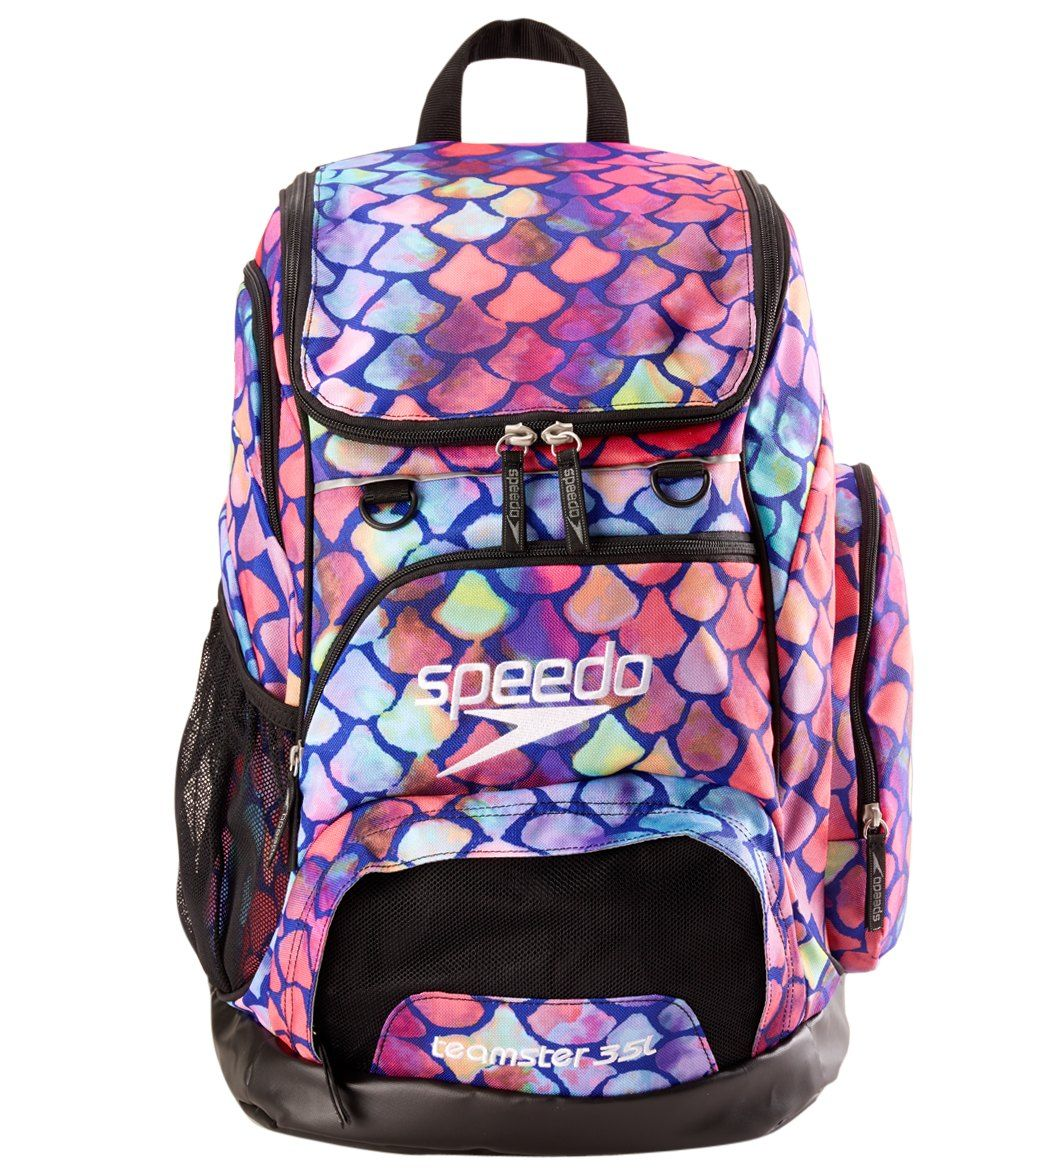 Speedo Large 35L Teamster Backpack at SwimOutlet.com - Free Shipping ... a9e843915de58